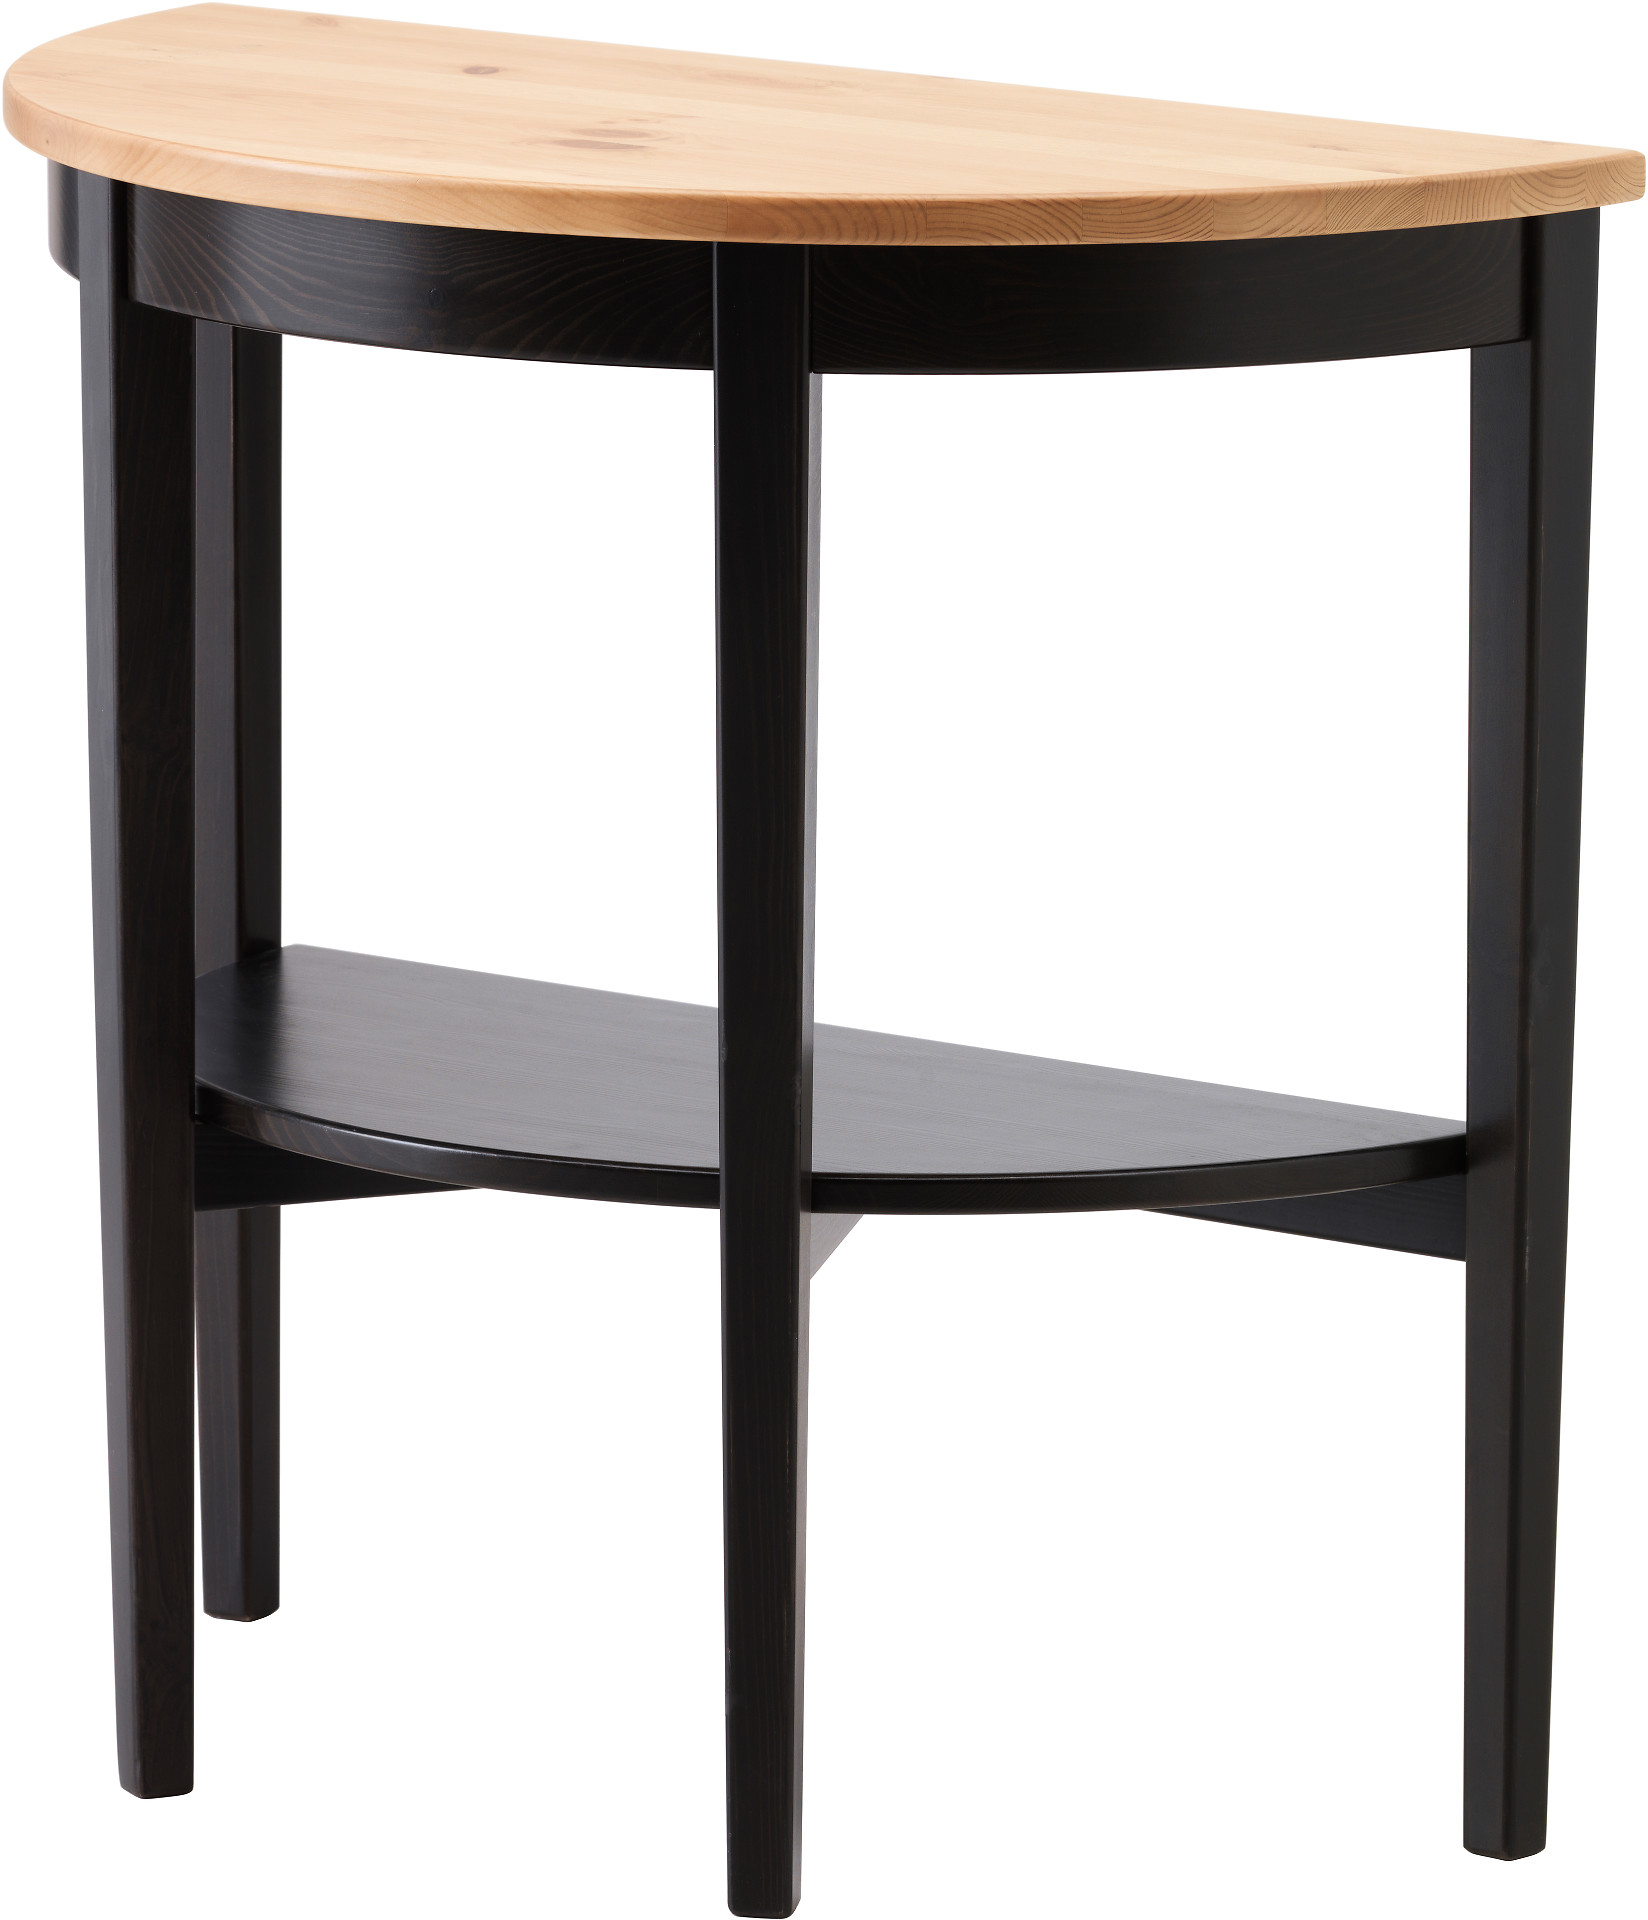 ARKELSTORP Console table - IKEA